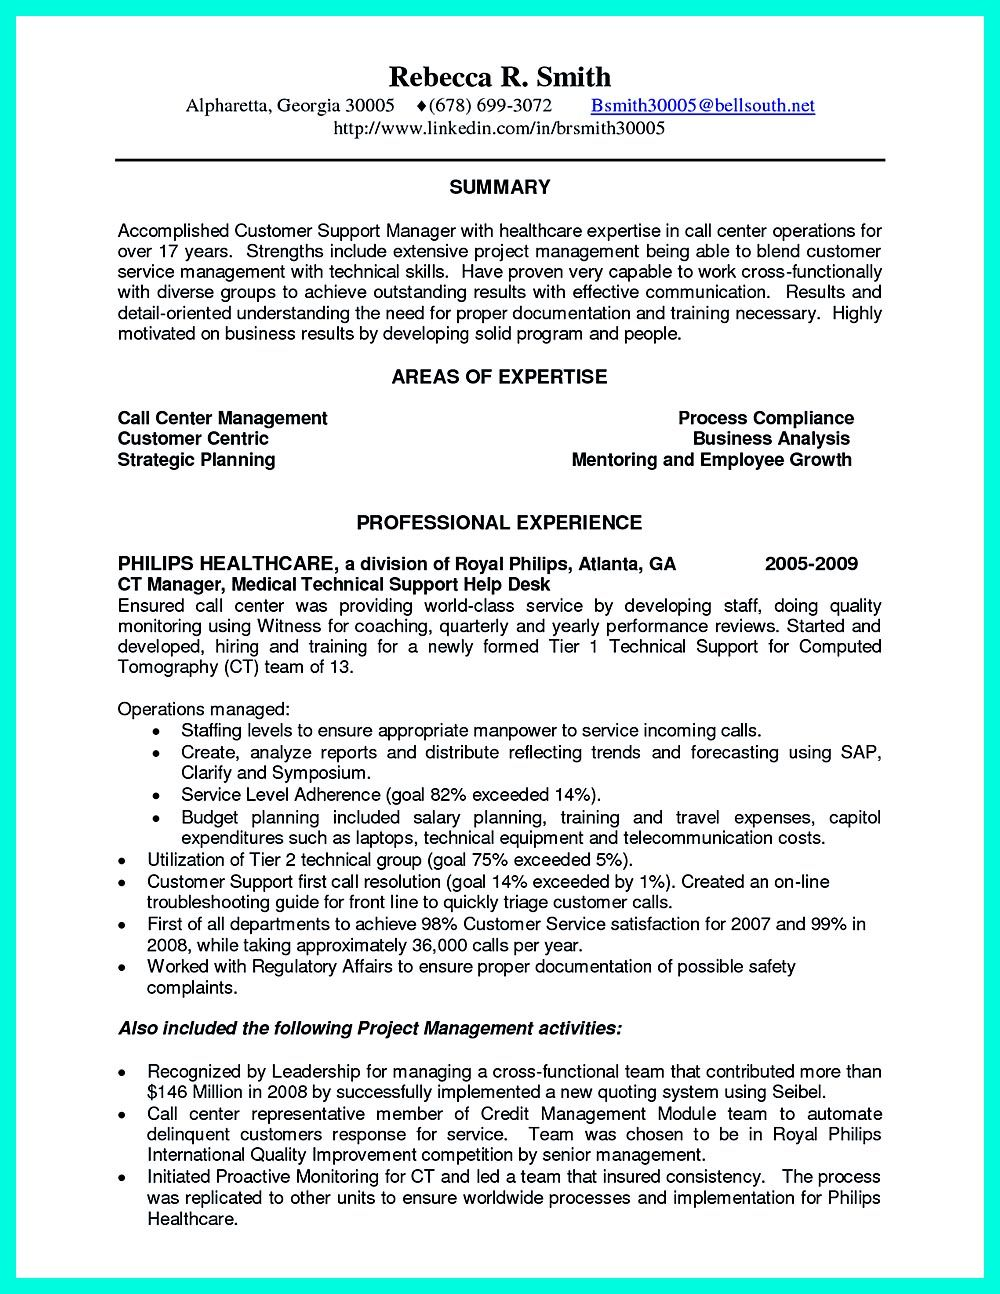 computed tomography resume examples